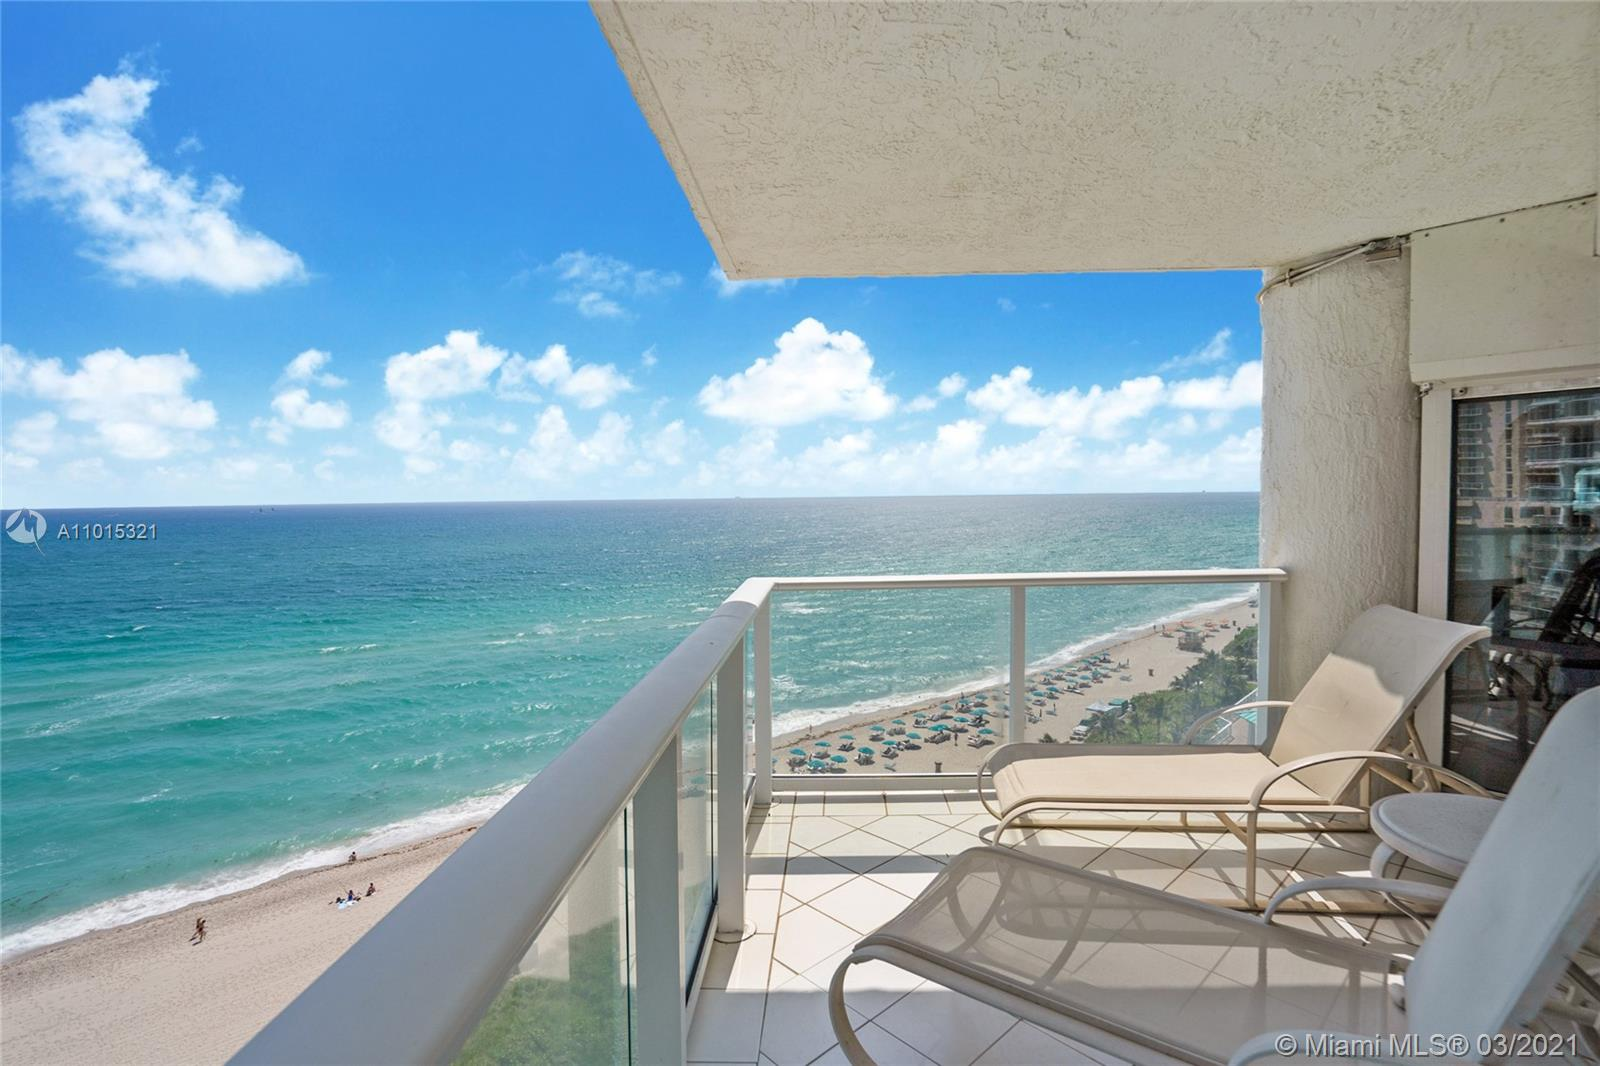 Direct oceanfront.  Northeast corner with wrap around balcony.  Views of the beach to the north and south.